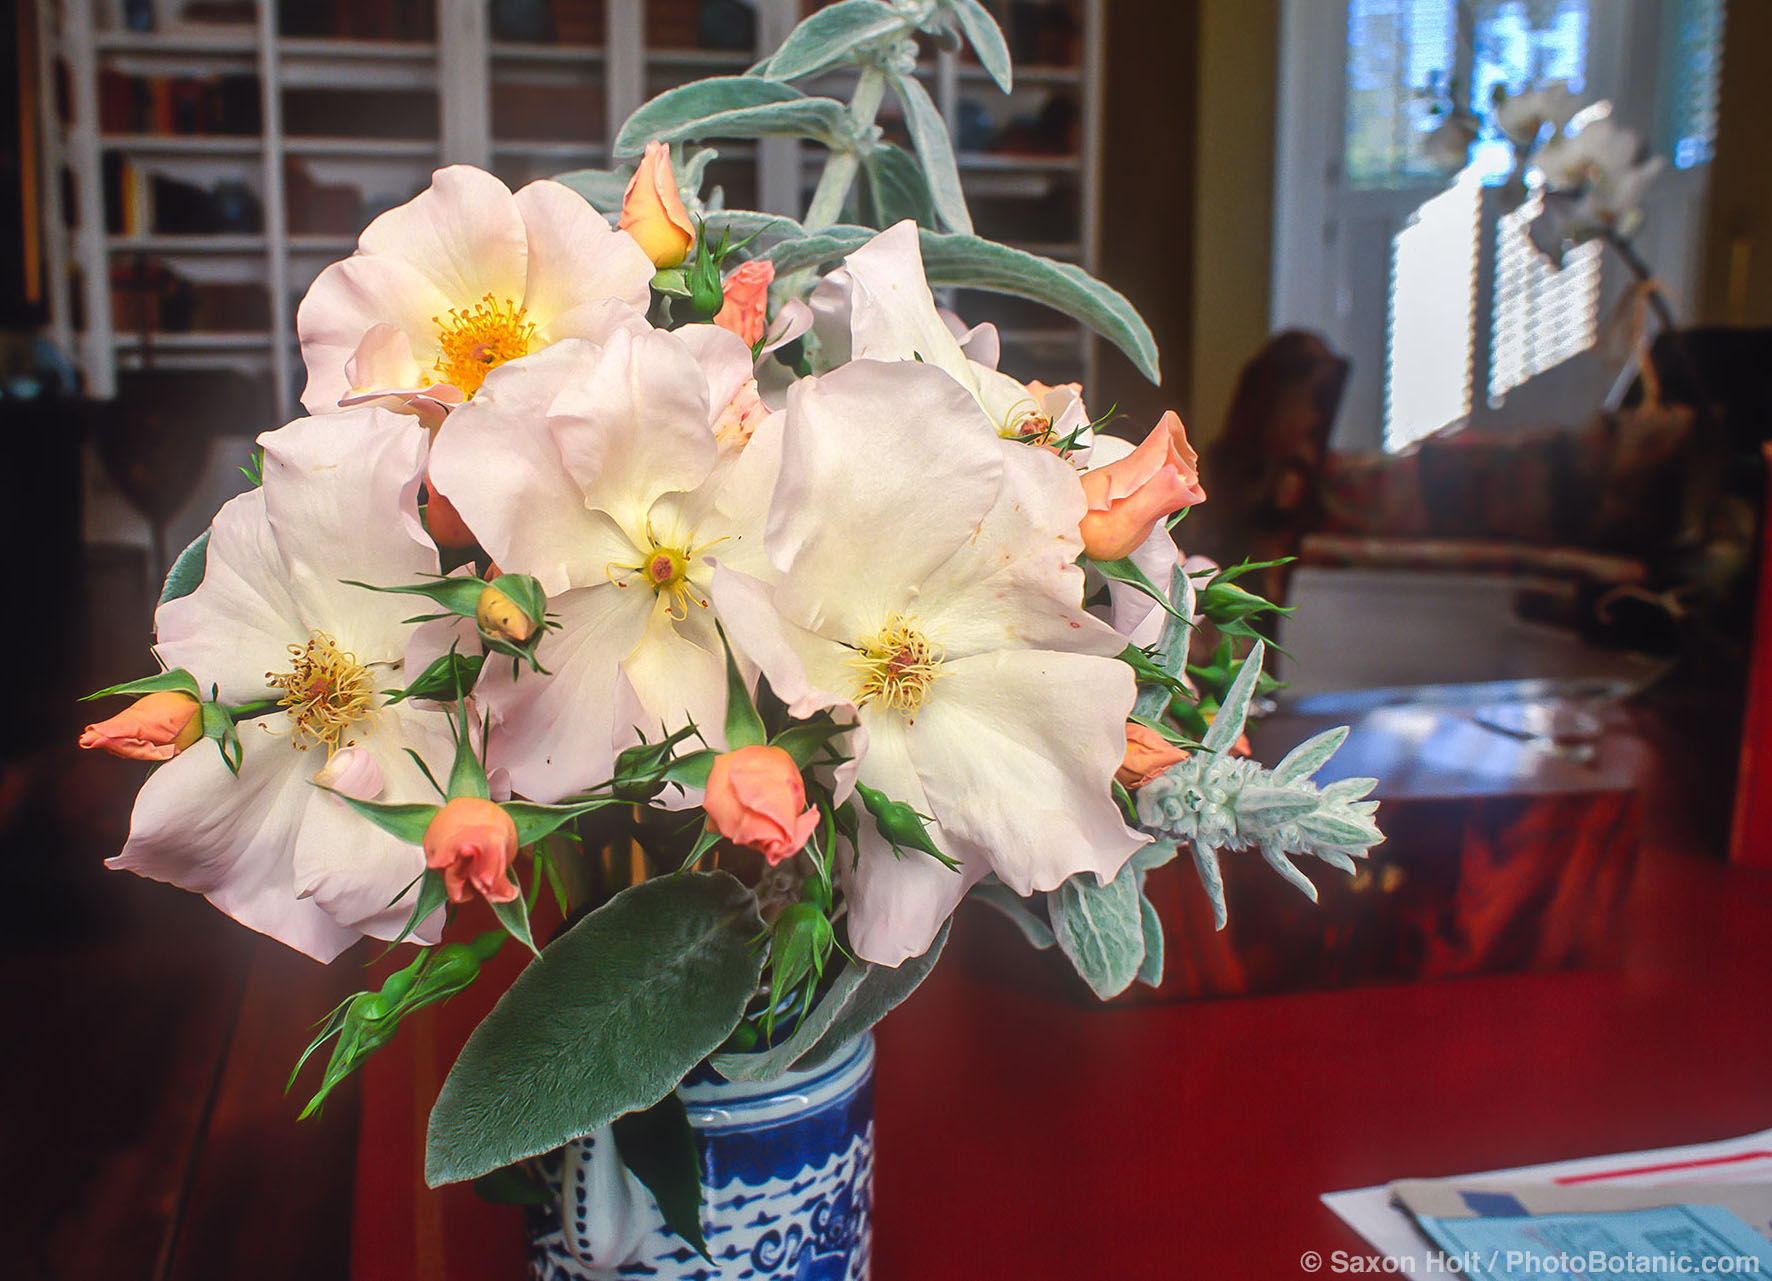 'Sally Holmes' rose in simple bouquet with lambs ear foliage in living room